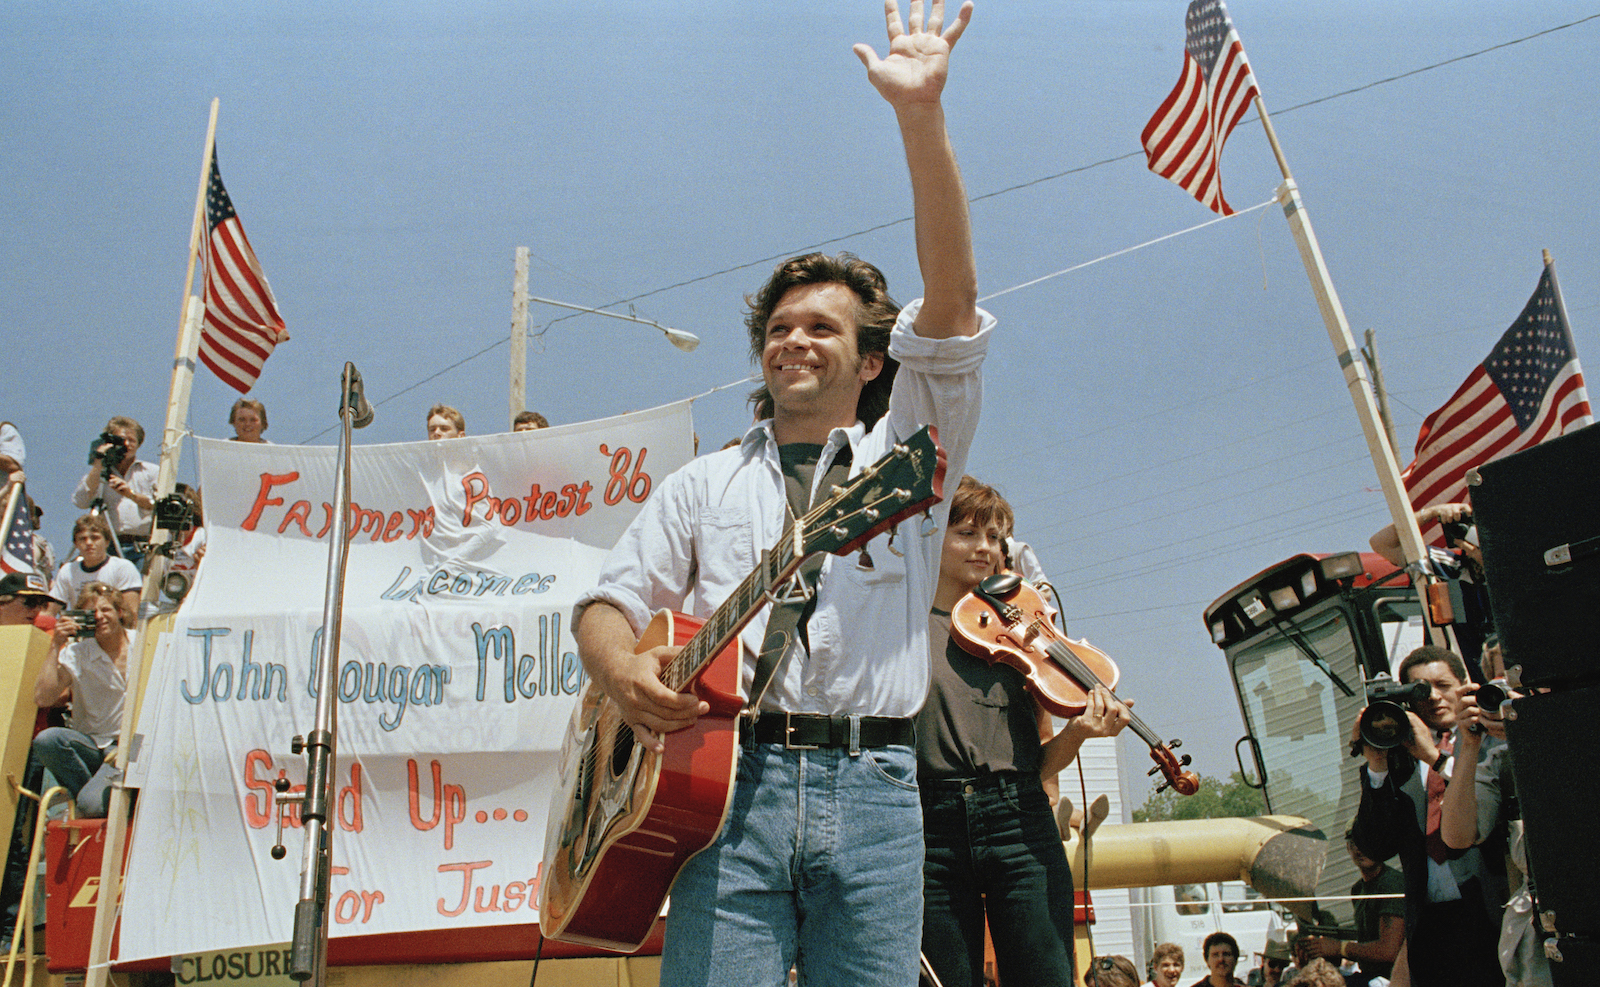 Singer John Cougar Mellencamp waves to the crowd in Chillicothe, Mo., as he arrives on stage to perform at the farmer's rally, May 7, 1986. The three-song concert was held in the parking lot of the Livingston County, Mo., FmHA office. Local farmers have occupied that site since March 17 to protest the policies of the county FmHA supervisor. (AP Photo)